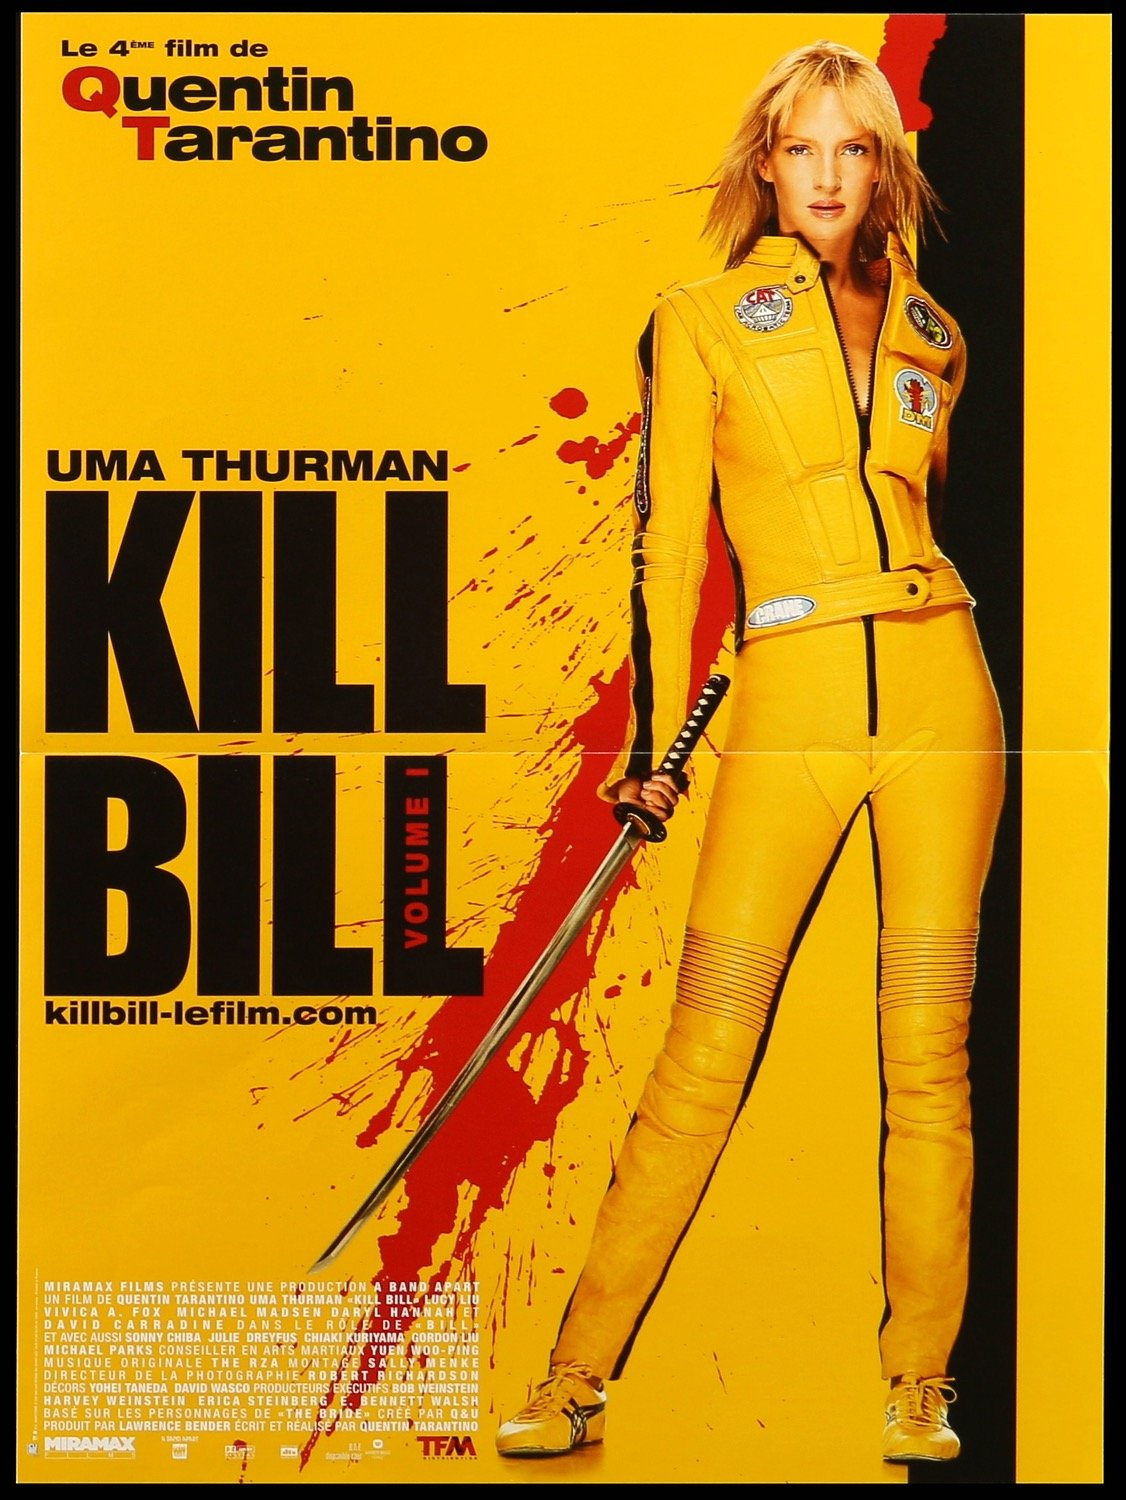 KillBillvol1 2003 french original film art 1200x